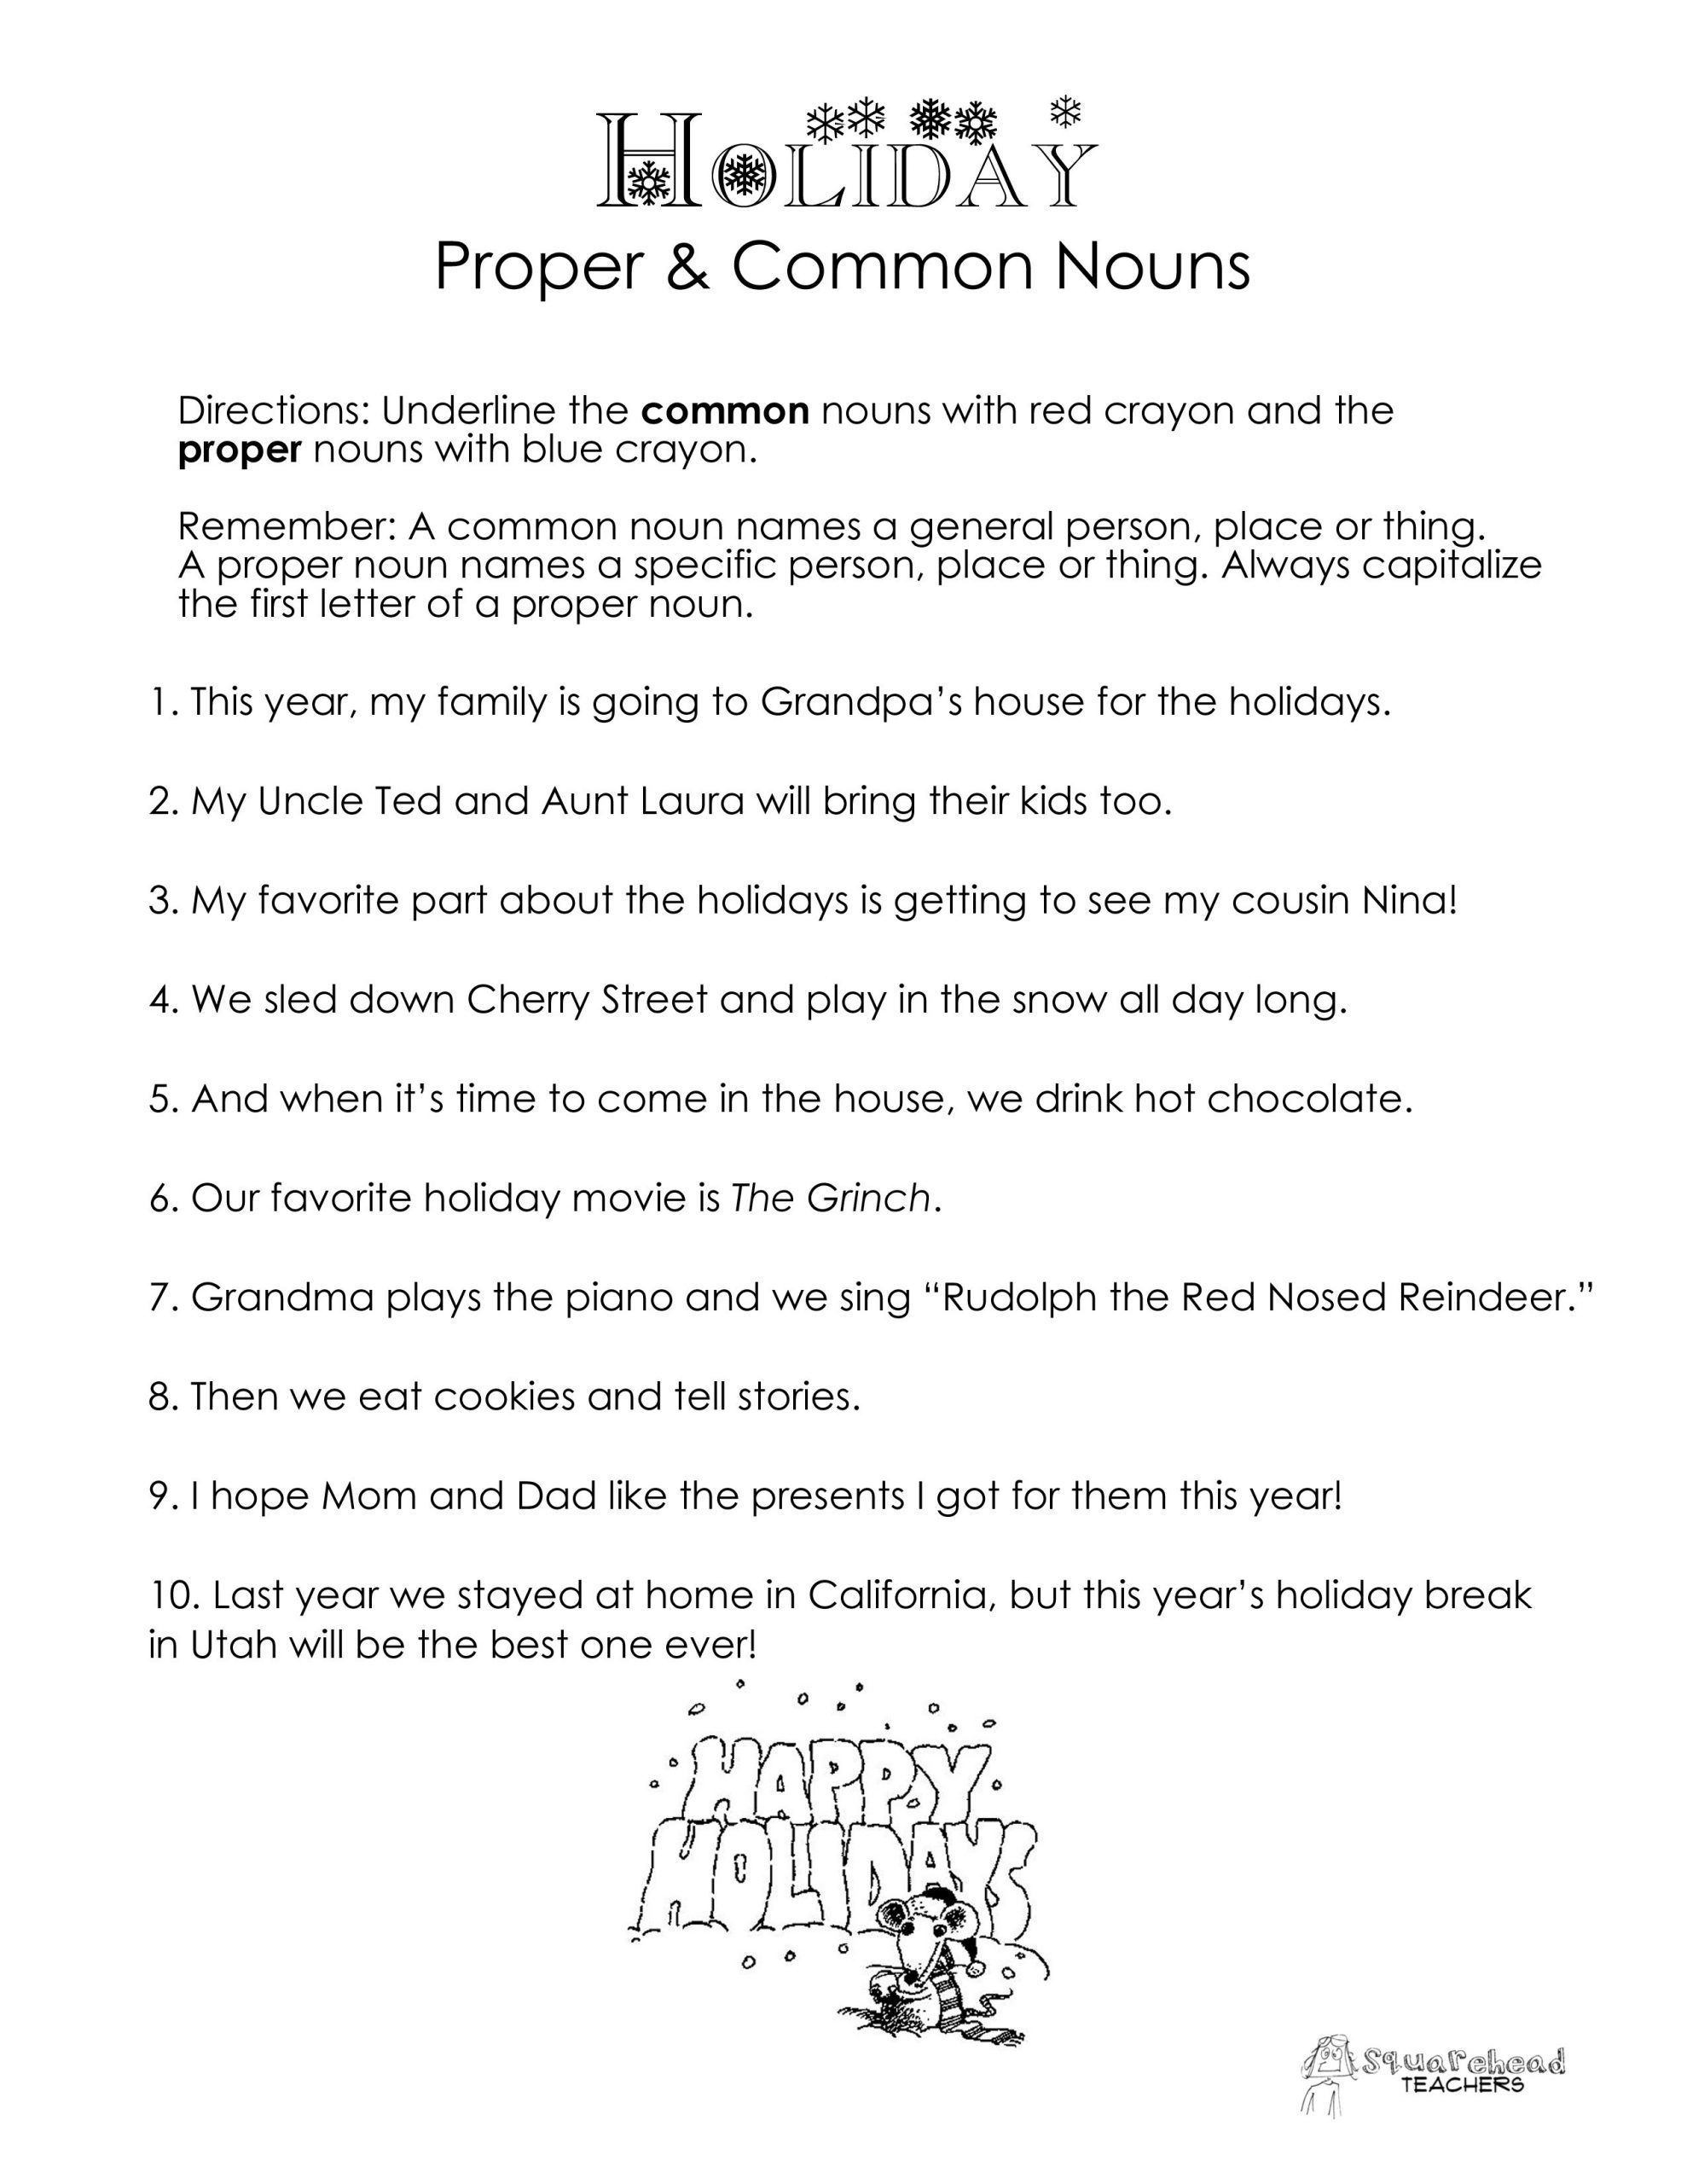 2nd Grade Proper Nouns Worksheet Mon Vs Proper Nouns Christmas Winter Holidays Worksheet